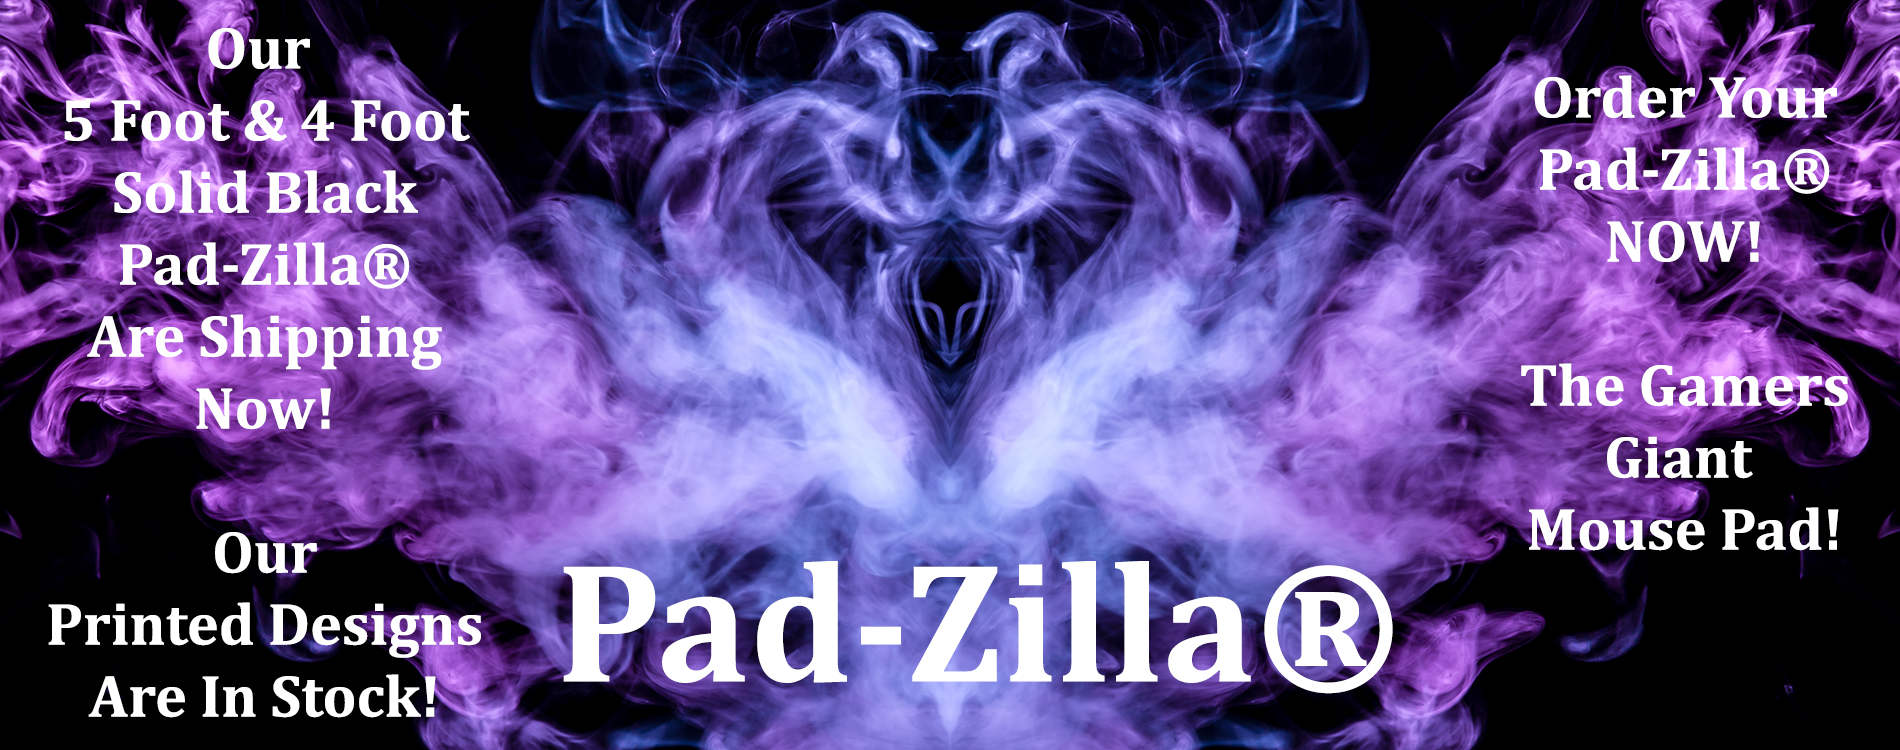 Order Your 5 foot and 4 foot Pad-Zilla® Giant Mouse Pads & Desk Mats Now!